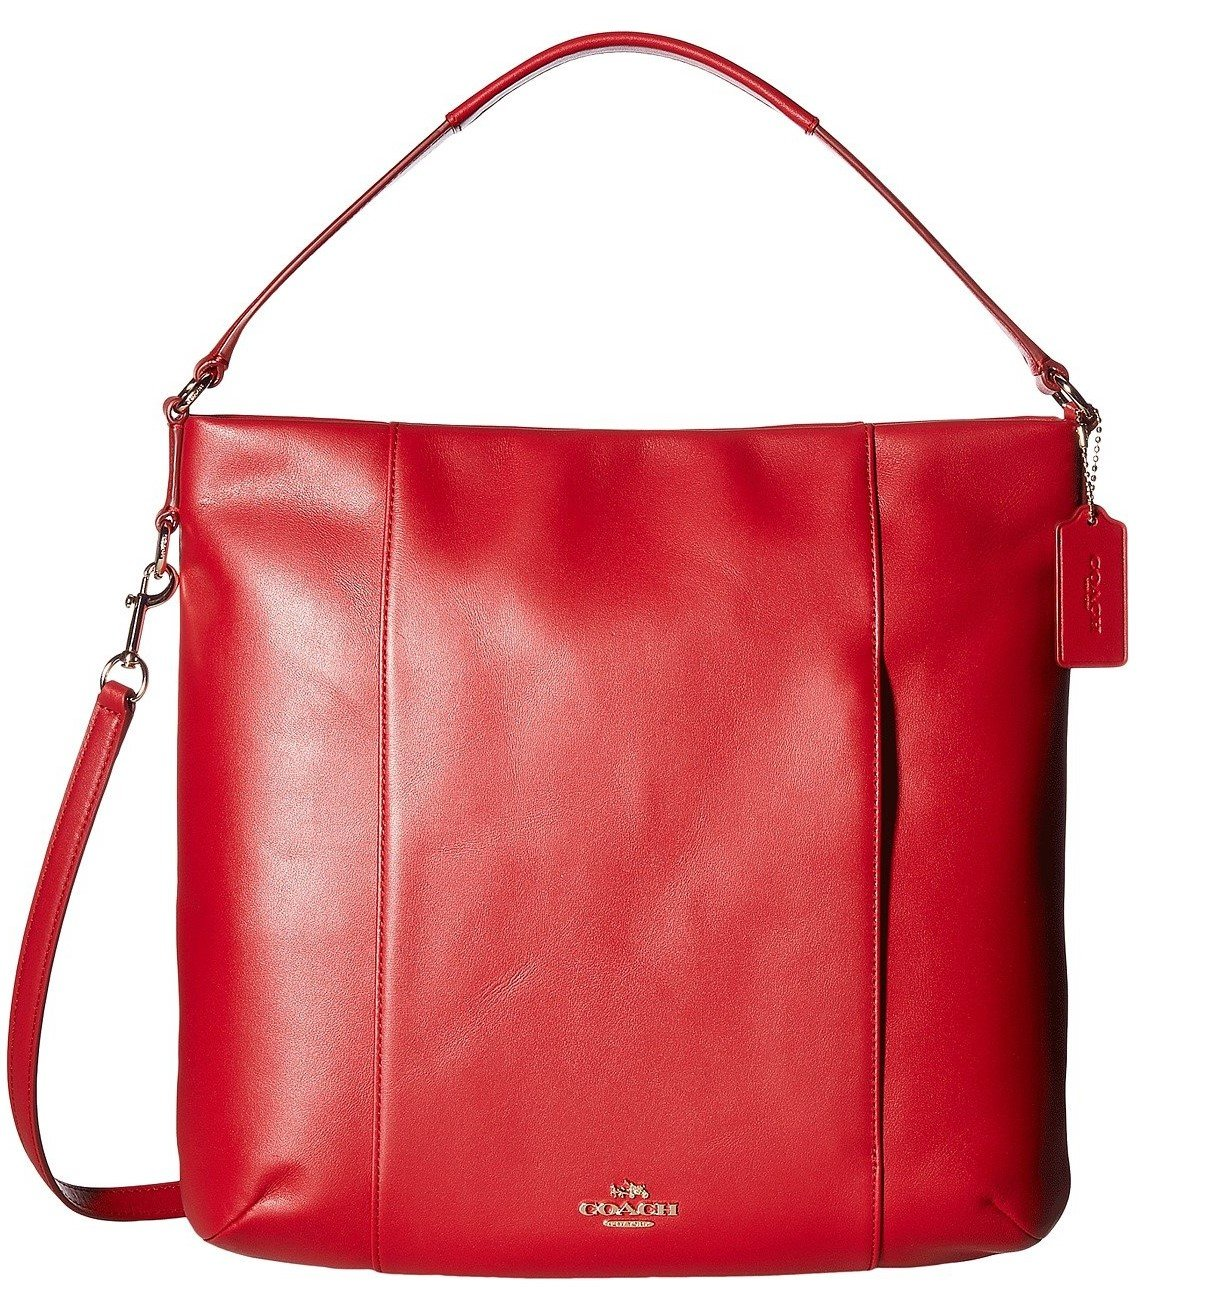 3fa29af13d78 ... store amazon coach womens leather isabelle shoulder bag classic red one  size shoes db505 49a37